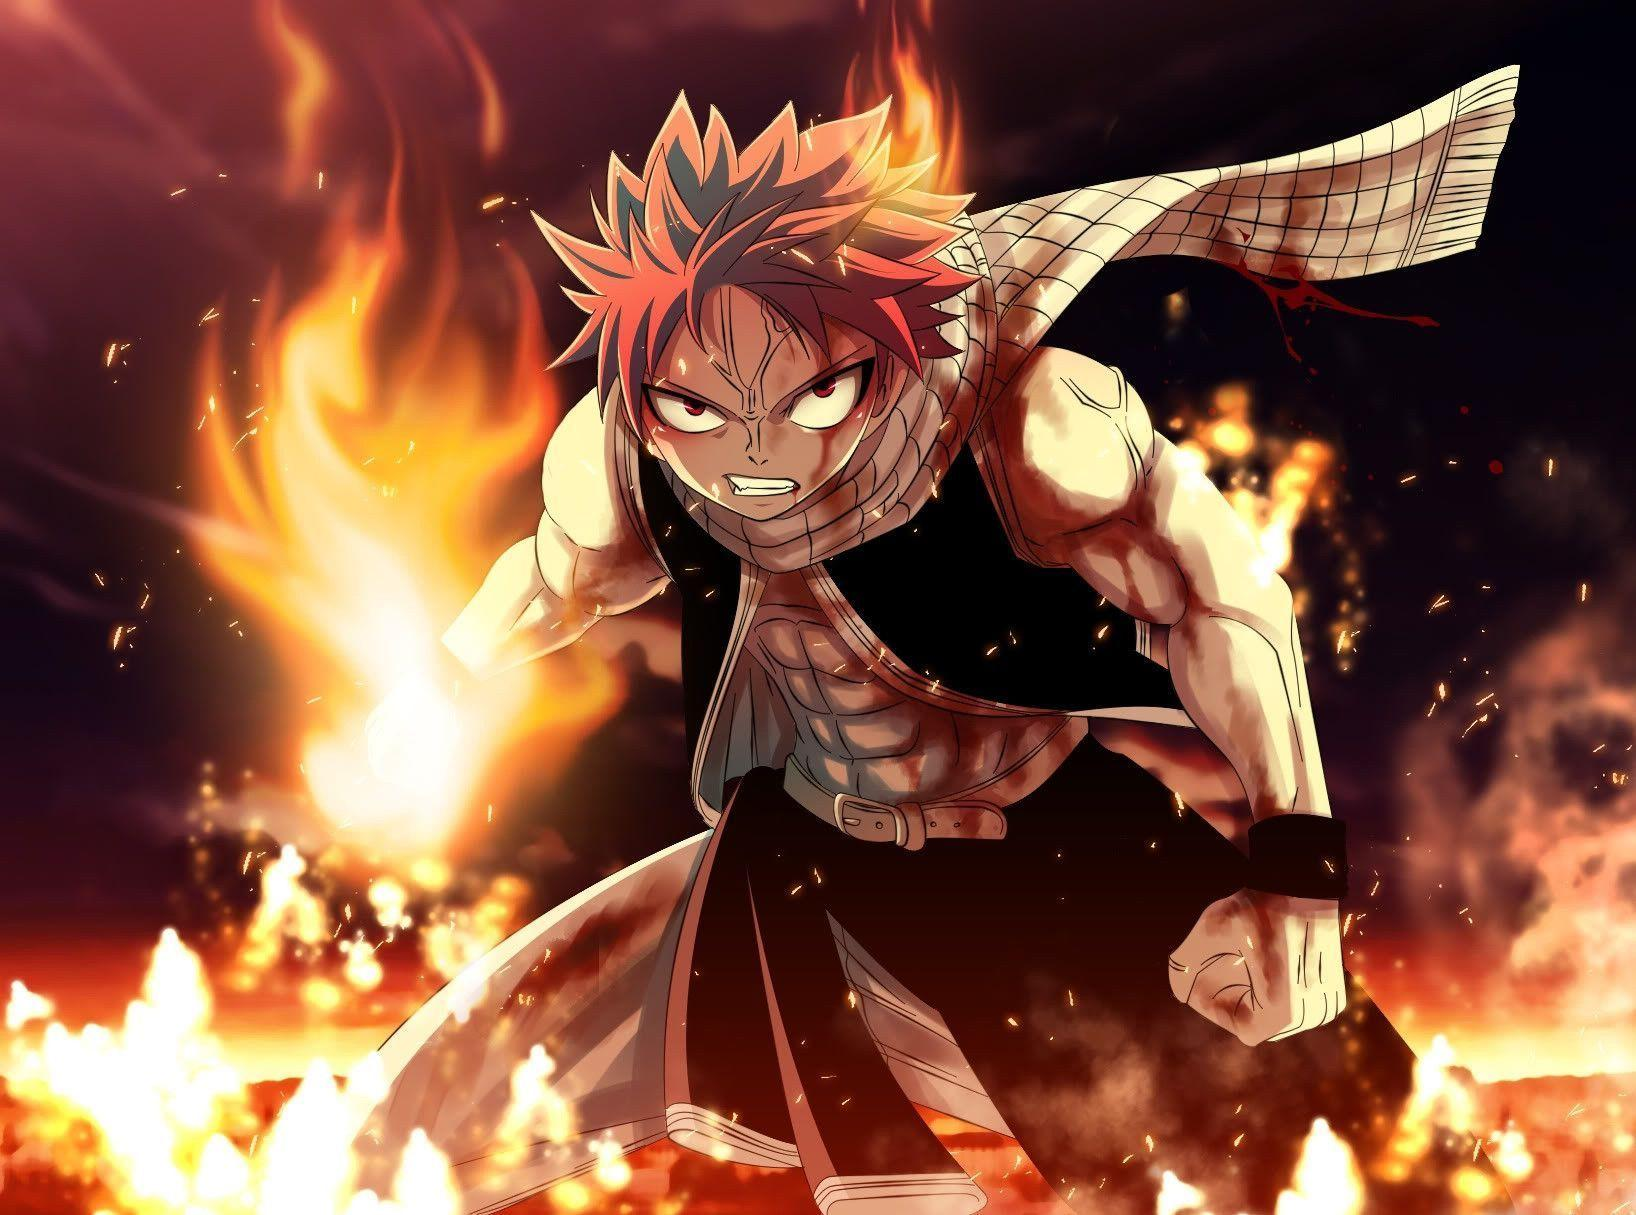 Fairy Tail Computer Wallpapers, Desktop Backgrounds 1636x1215 Id